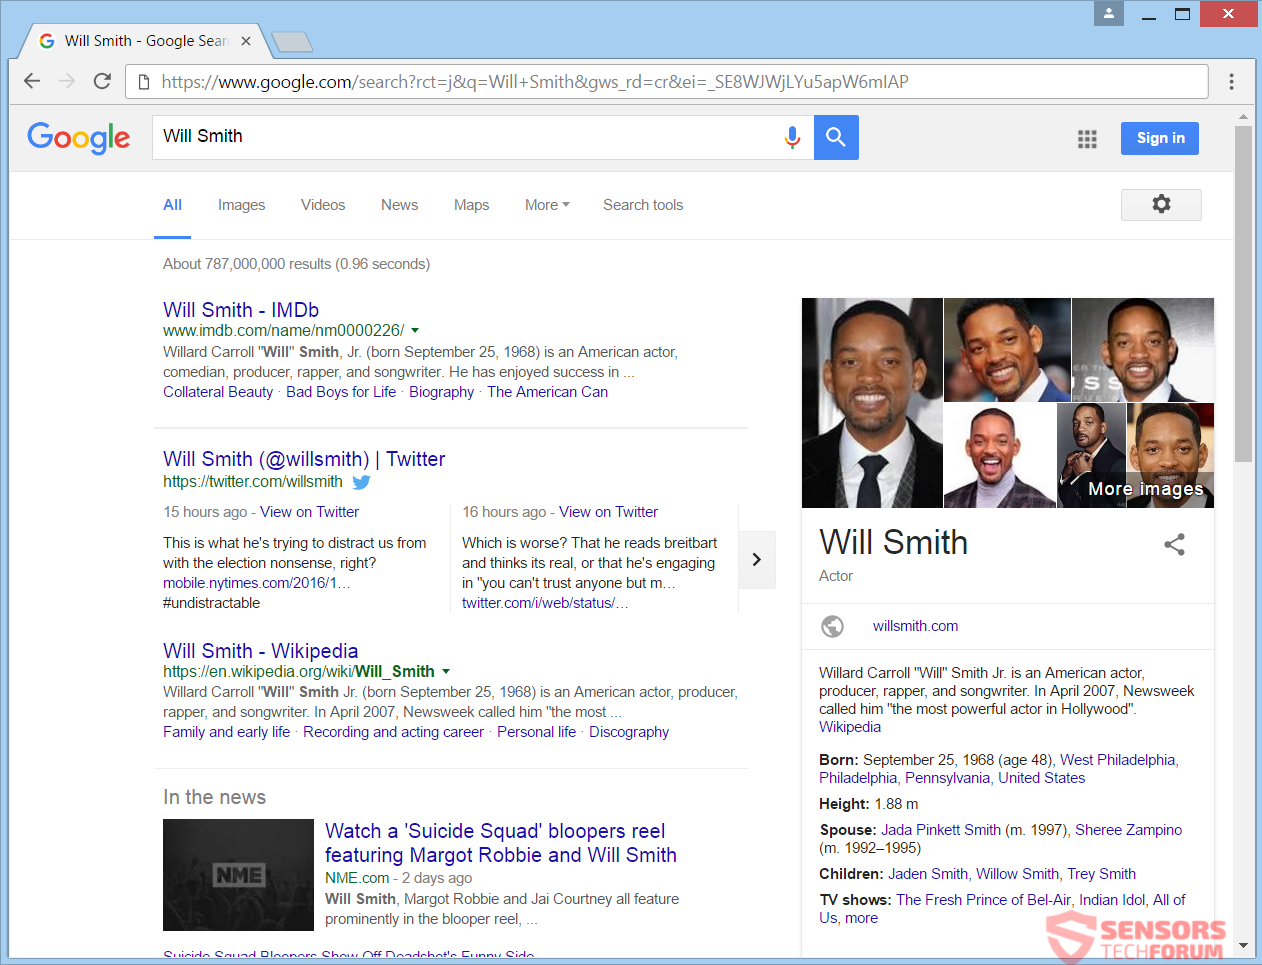 stf-web-start-page-com-browser-hijacker-redirect-will-smith-google-search-results